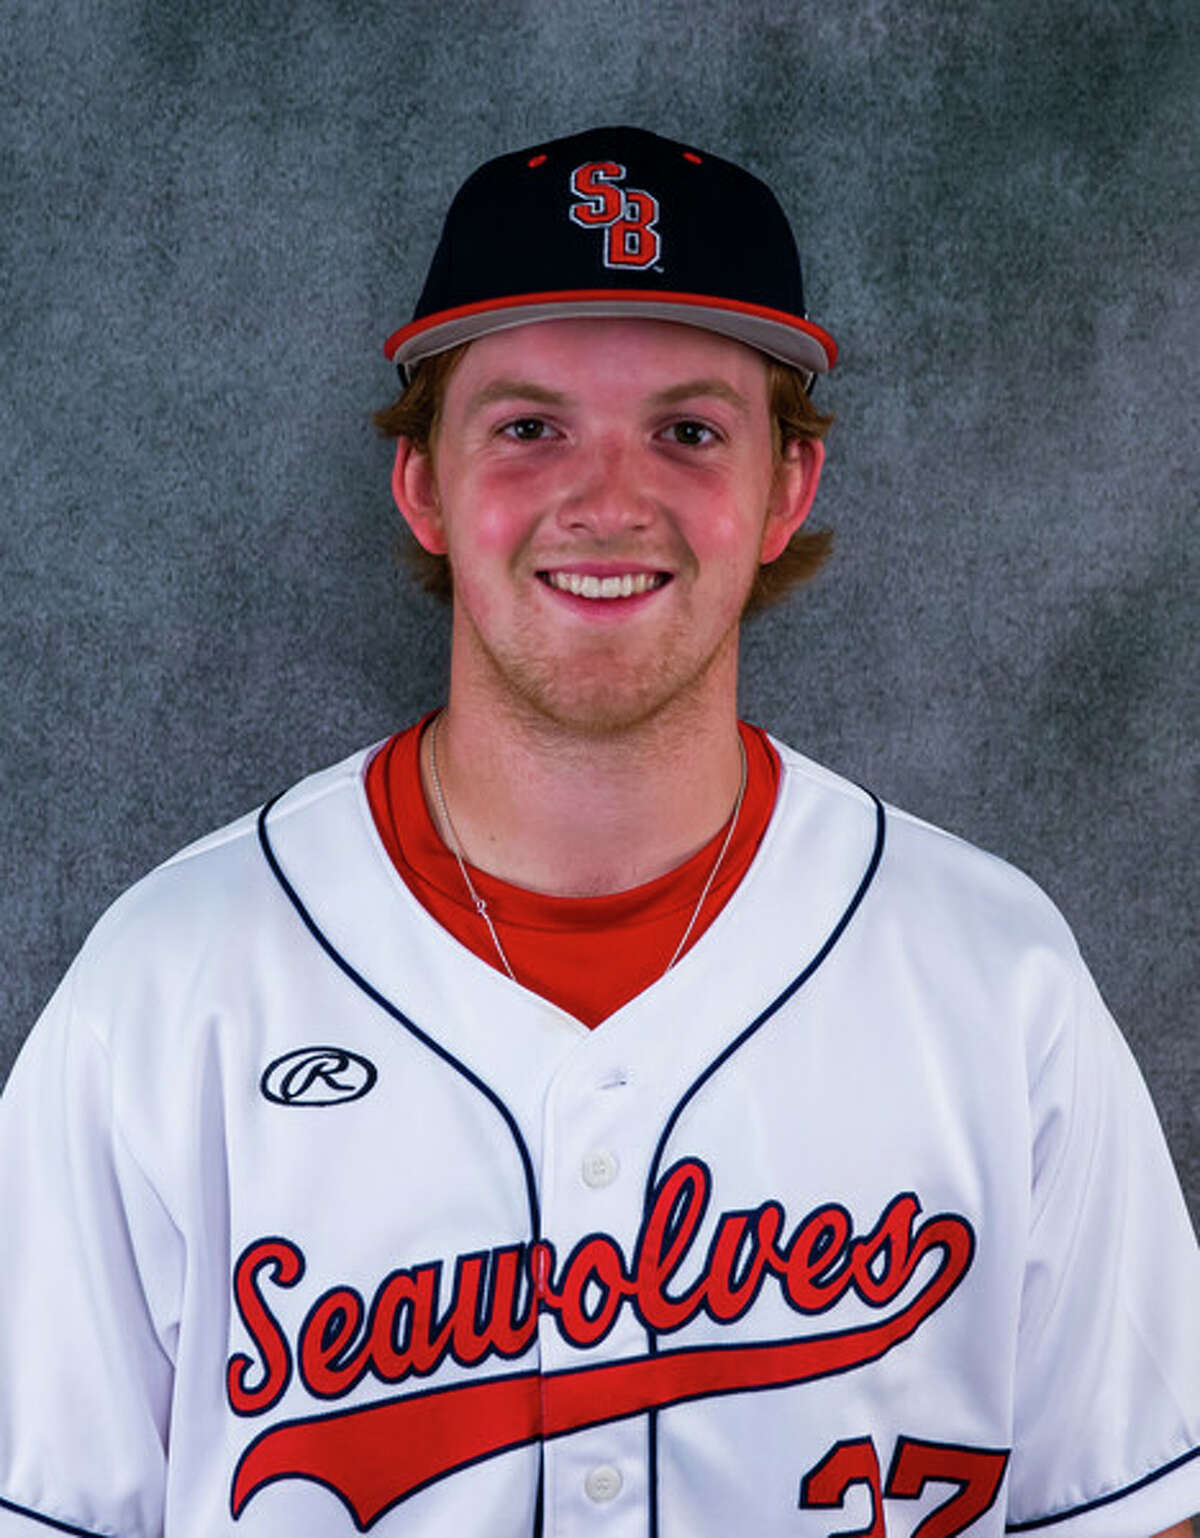 Stony Brook baseball junior Brad Hipsley of Saratoga Springs said the abrupt end of the season on May 30, 2021 reminded him of the sudden end of the 2020 season. (Stony Brook athletic communications)